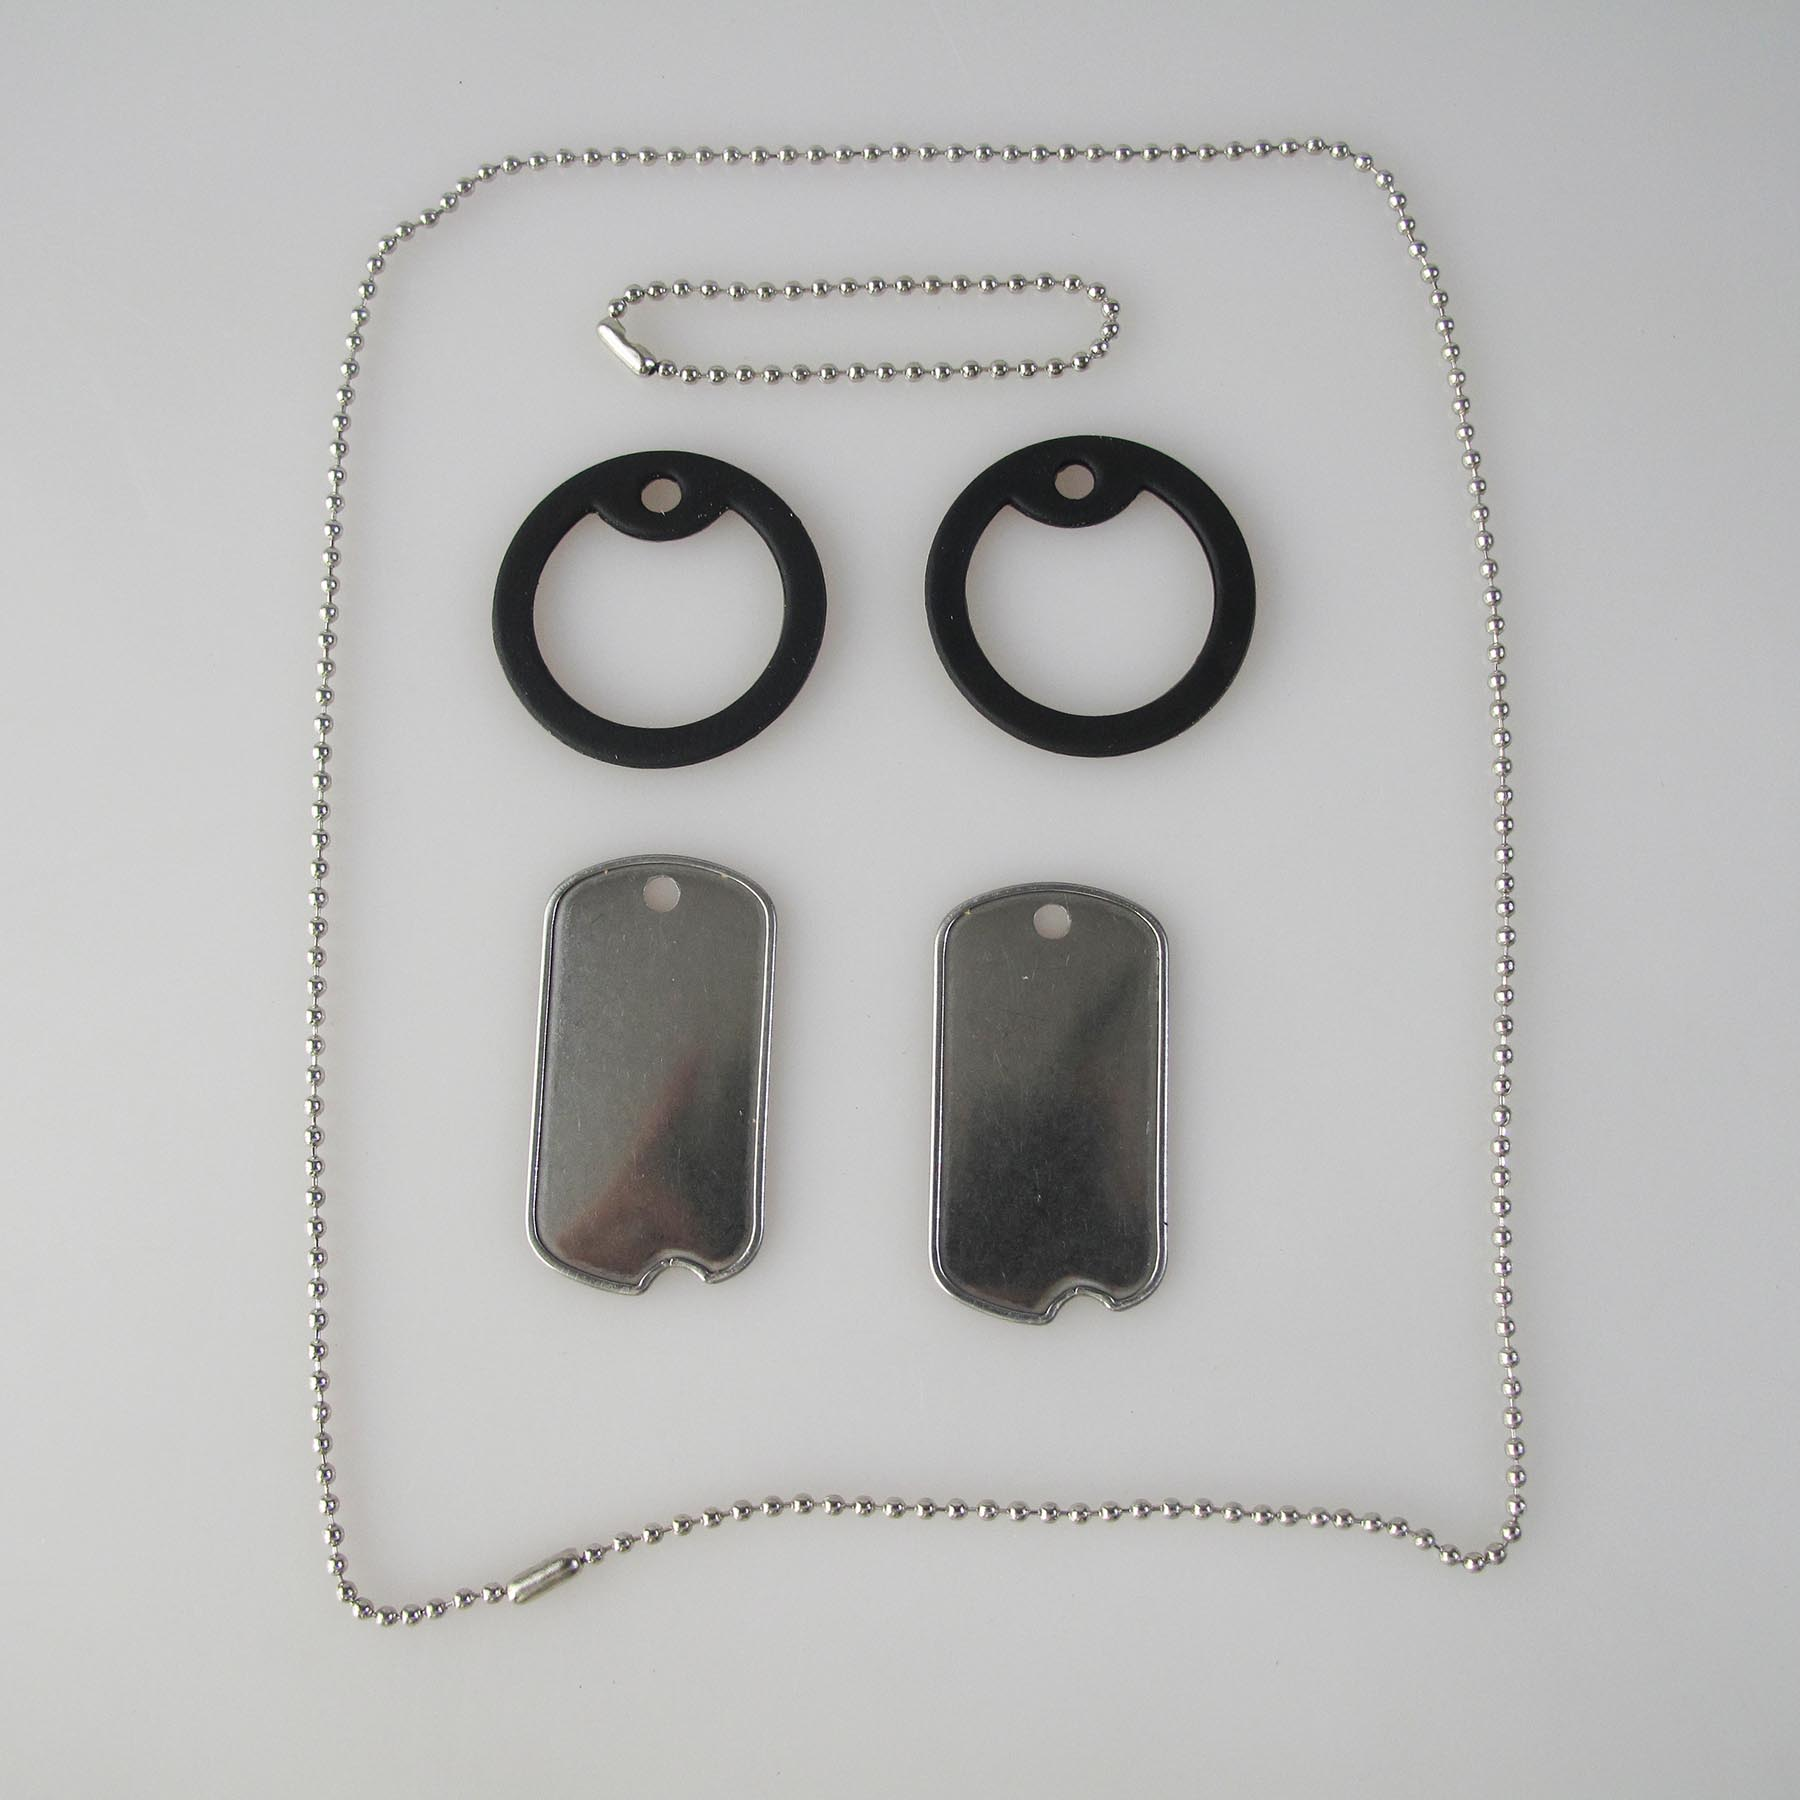 Mens Dog Tags Army Dog Tag /Stainless Steel Dog Tag Rolled Edges With An Indentaion